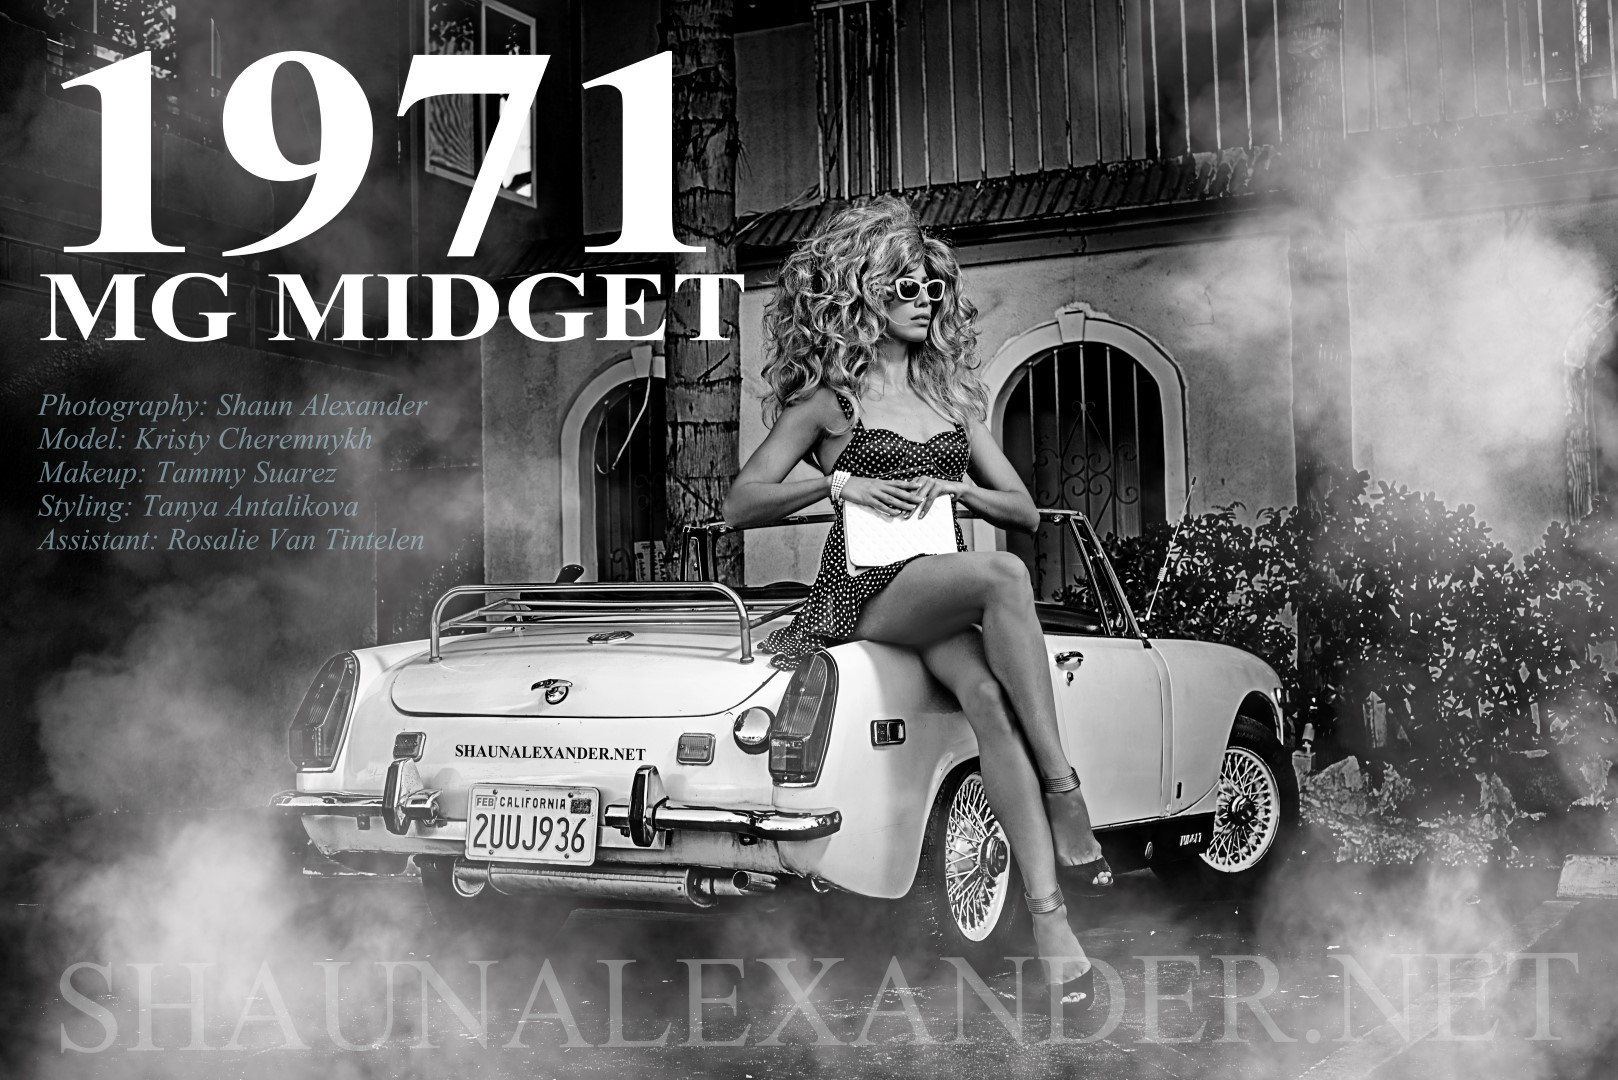 1971 MG MIDGET PHOTOS BY SHAUN ALEXANDER TOP FASHION PHOTOGRAPHER